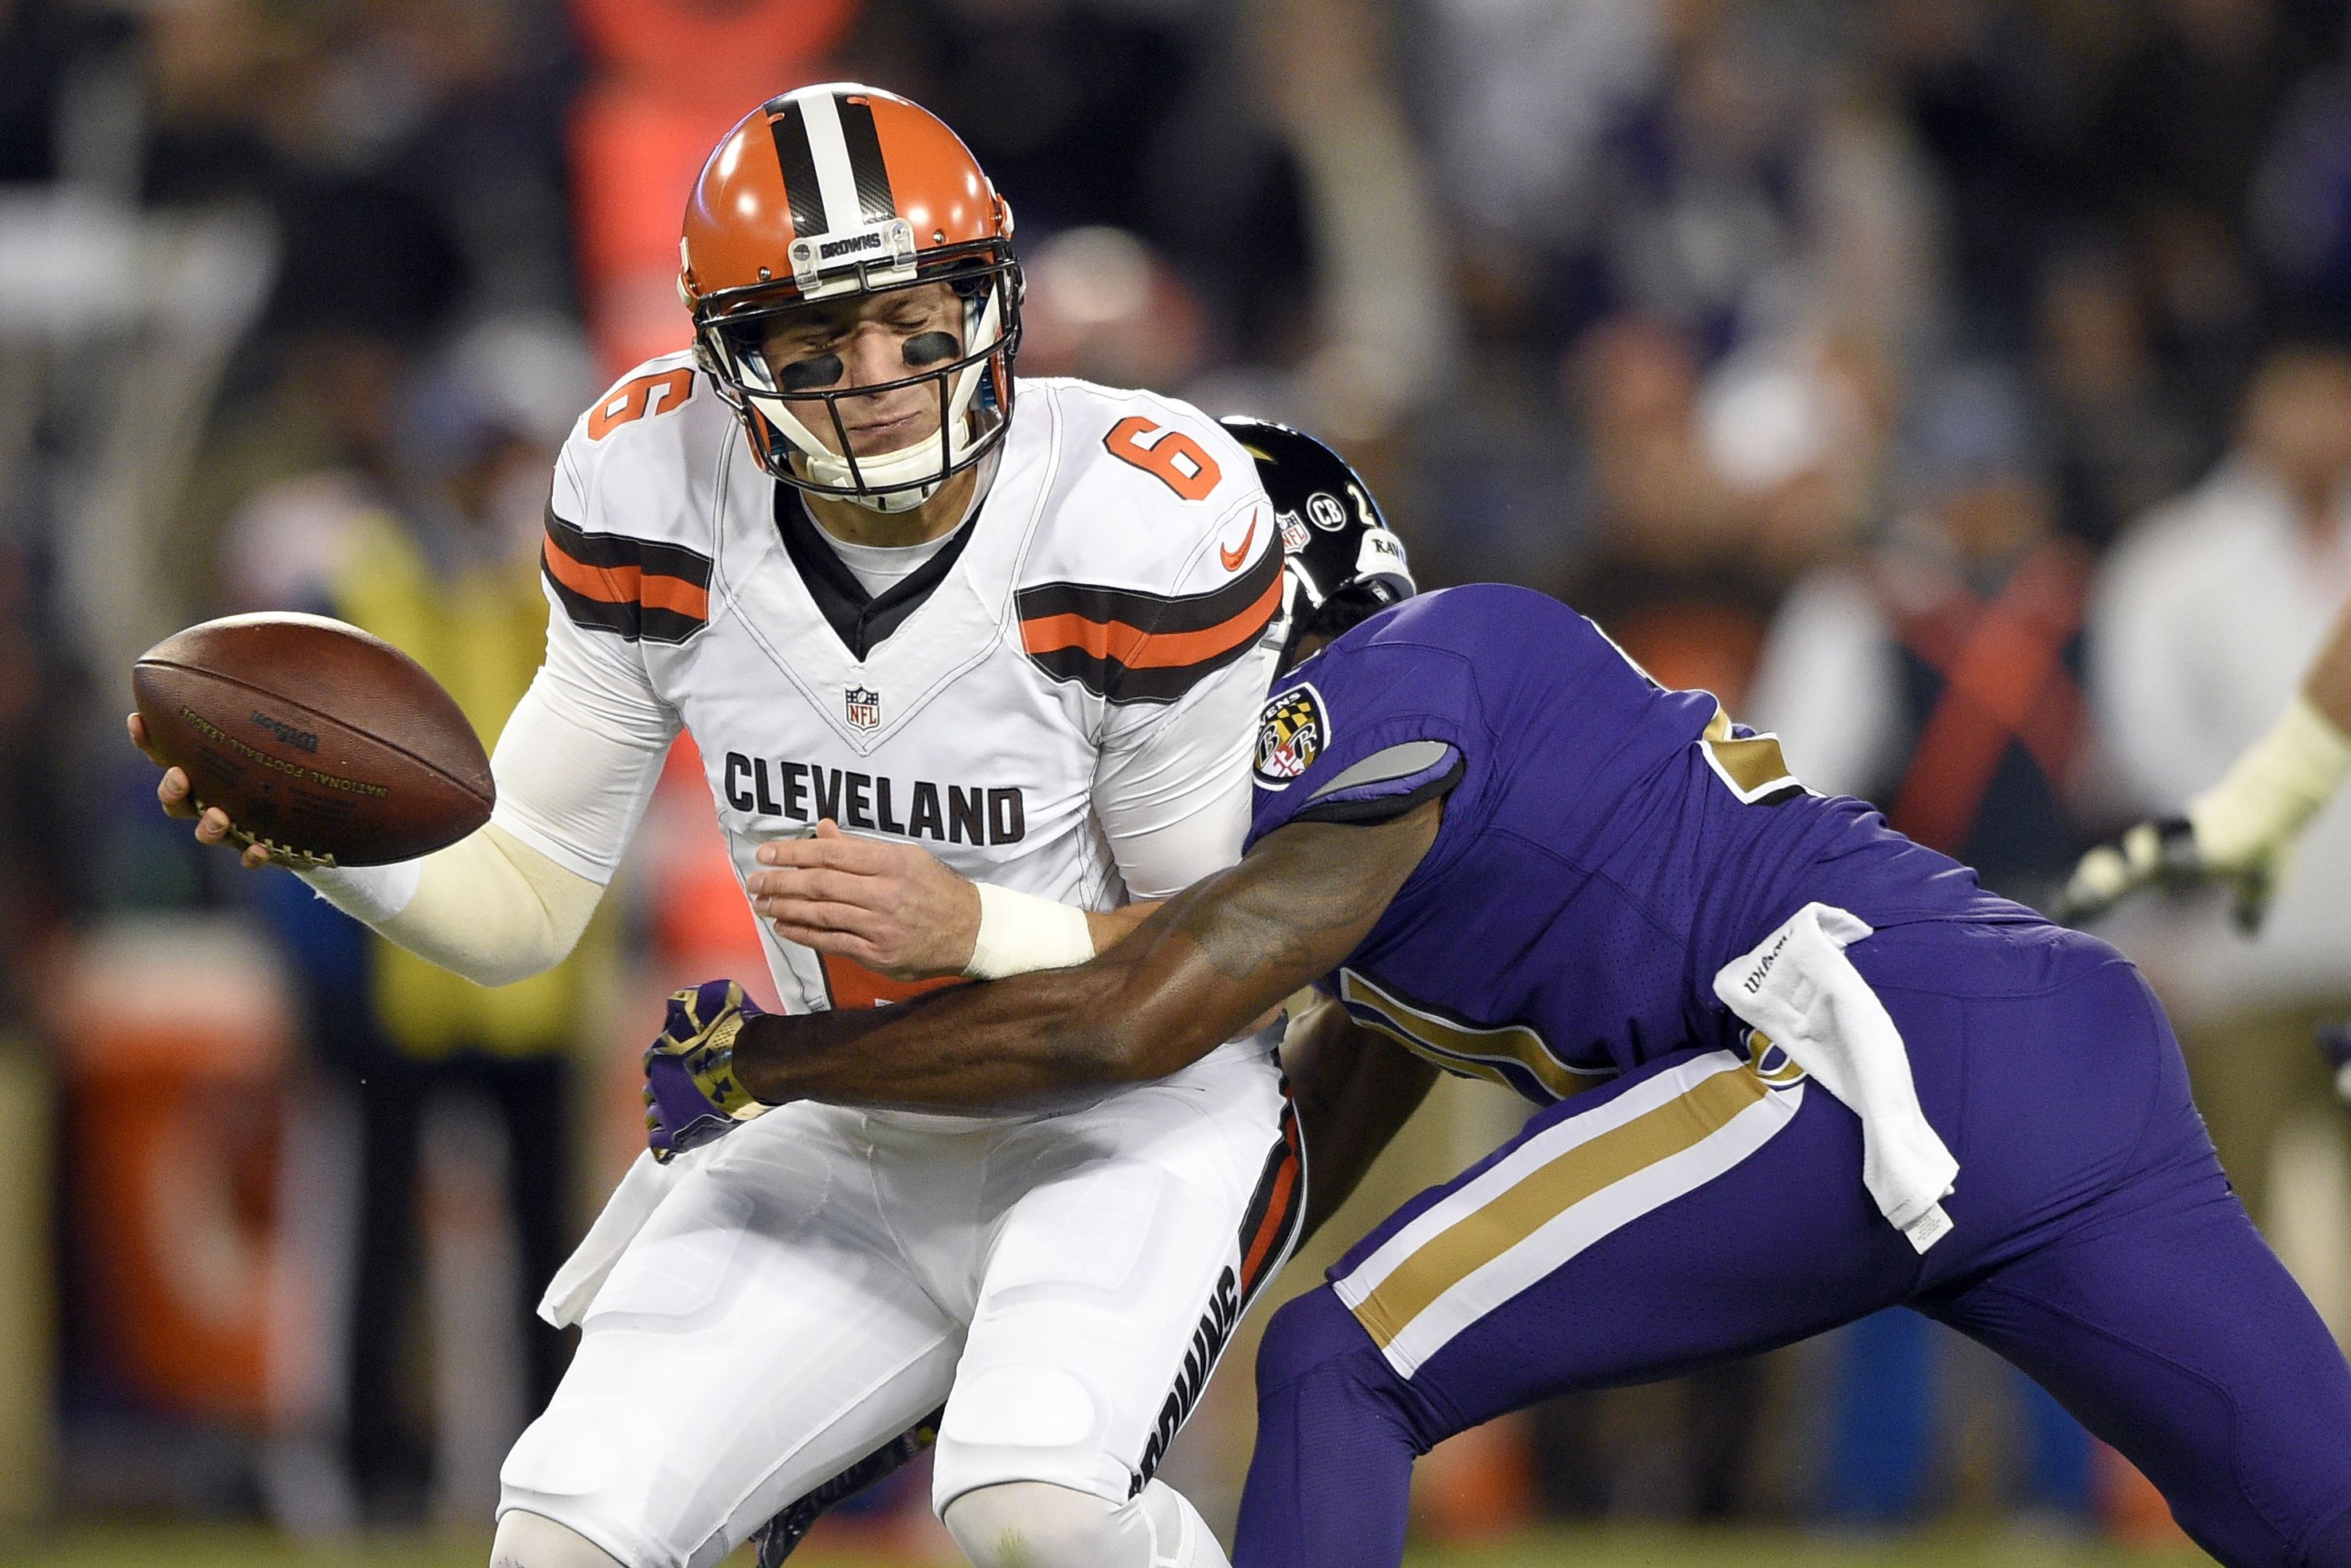 Cleveland Browns quarterback Cody Kessler, left, is sacked by Baltimore Ravens free safety Lardarius Webb during the first half an NFL football game, Thursday, Nov. 10, 2016, in Baltimore. (AP Photo/Nick Wass)